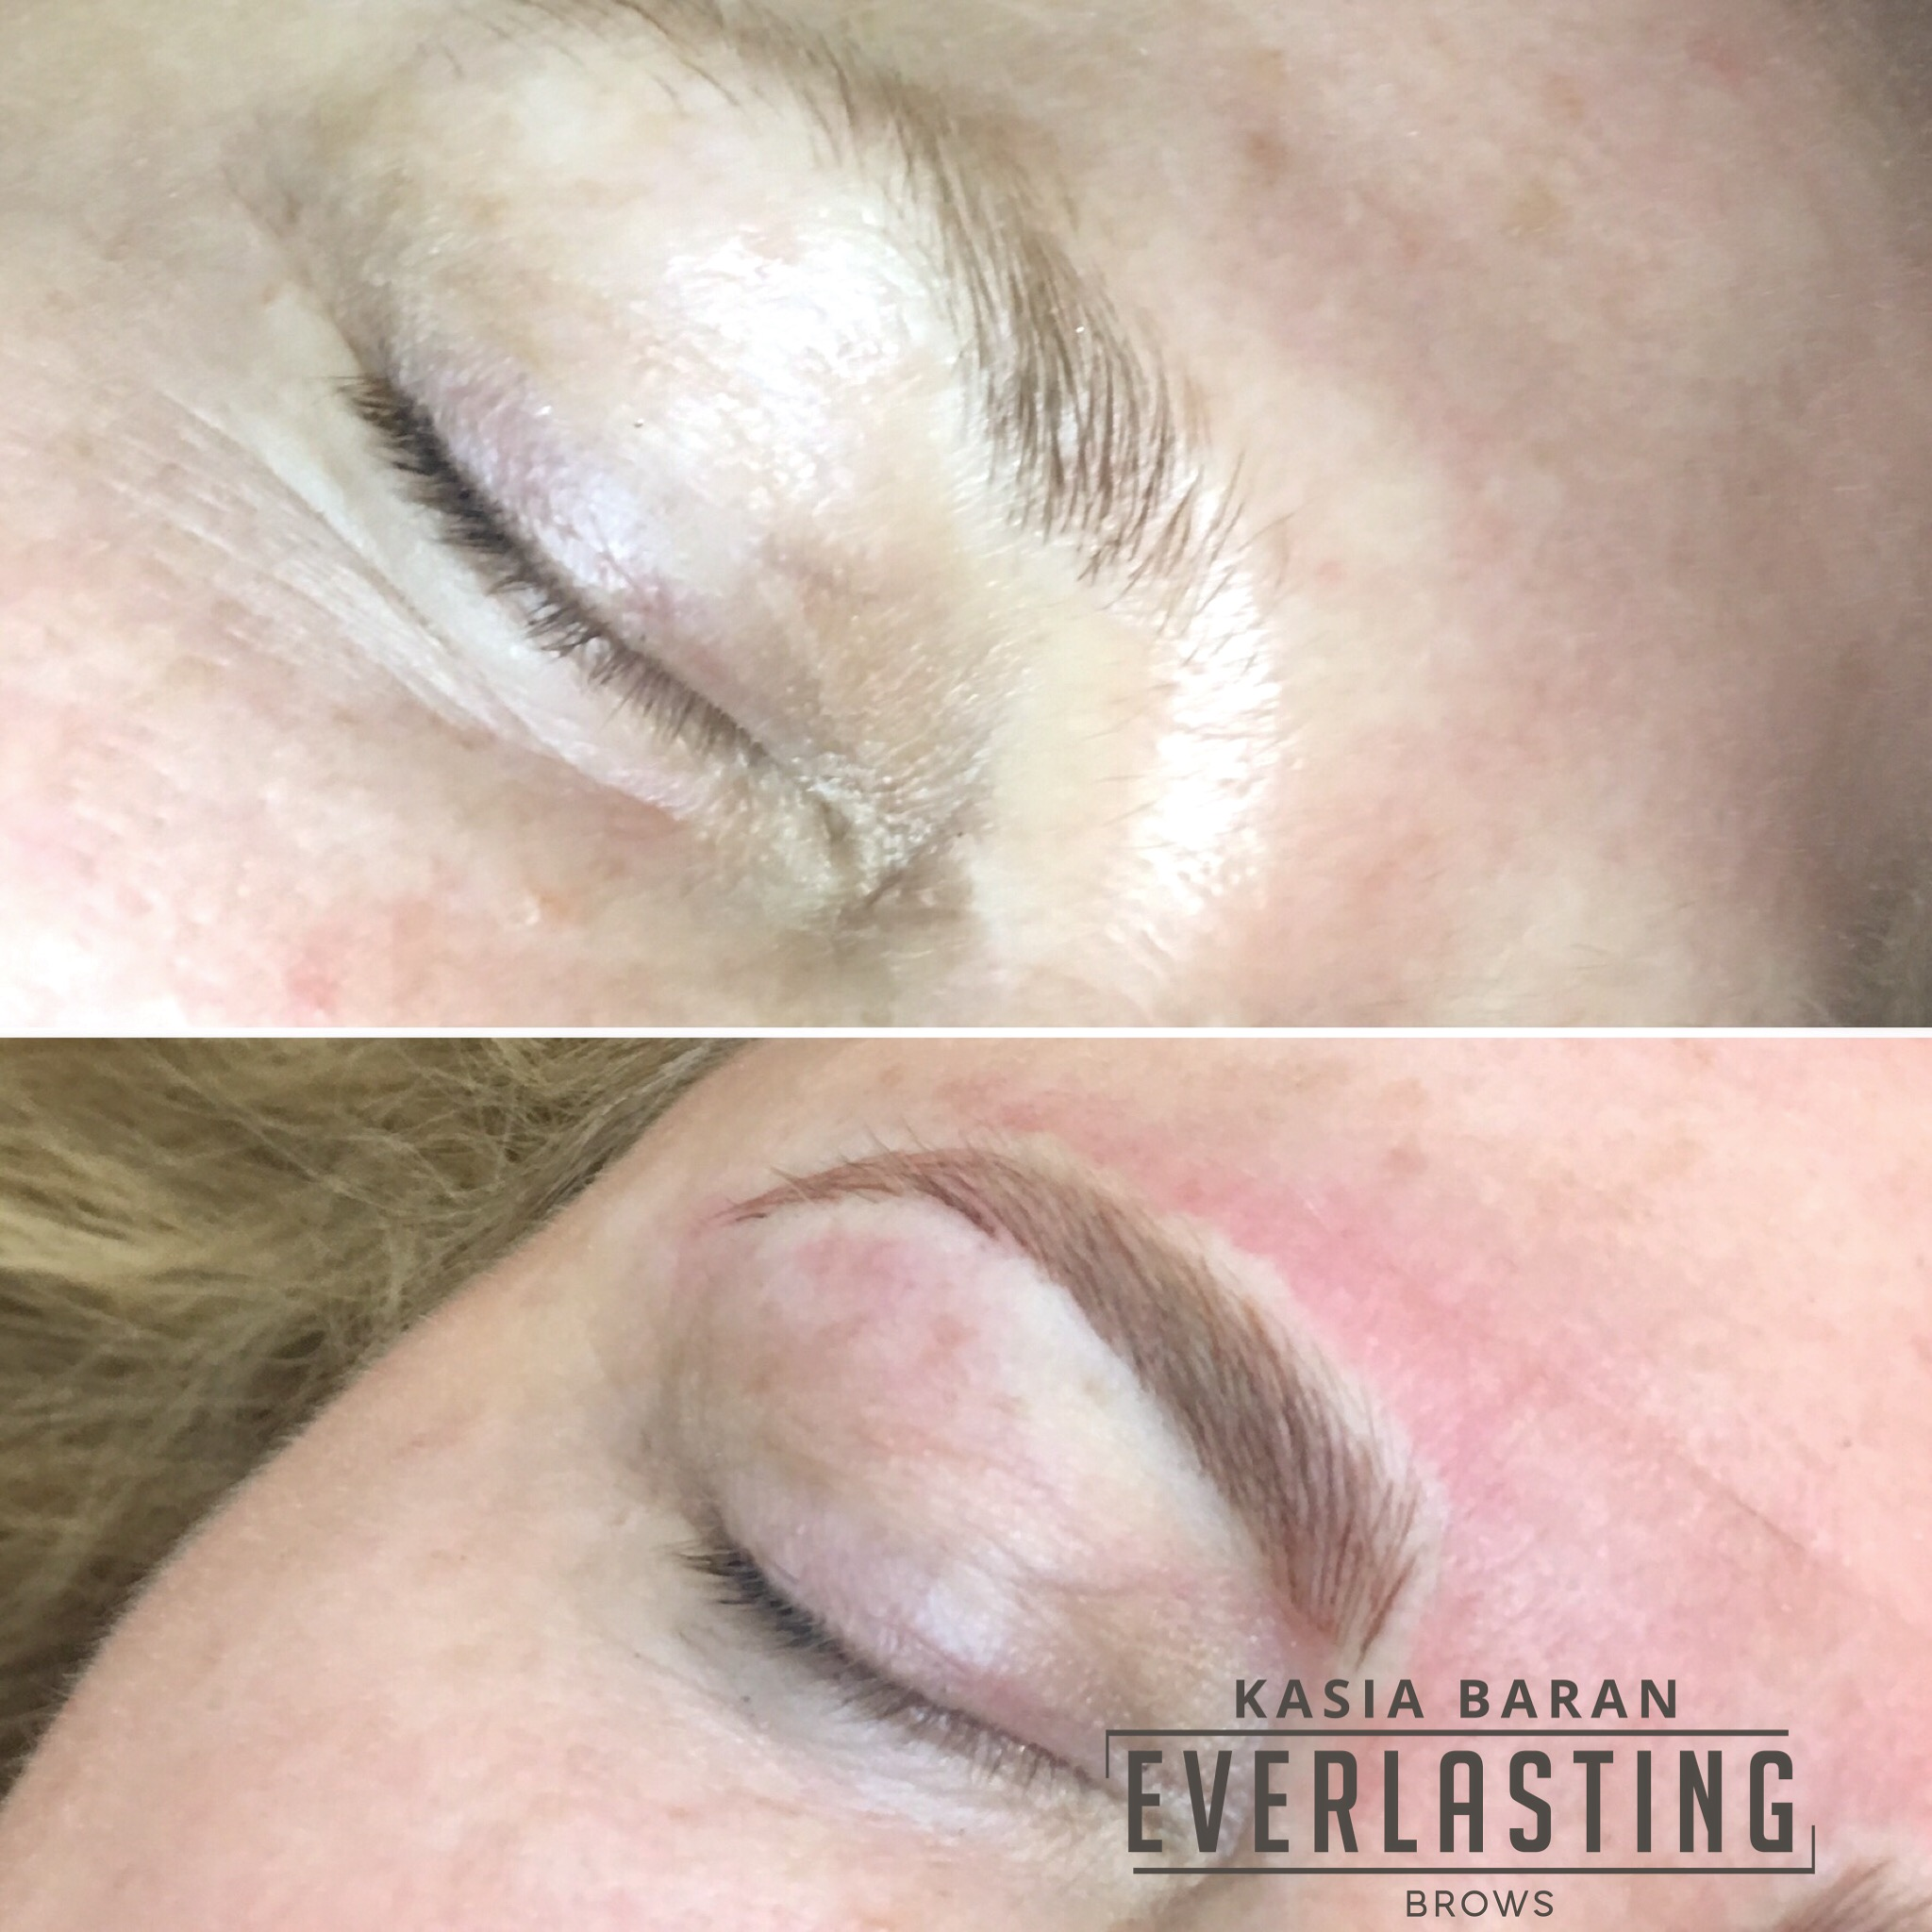 NATURAL BROWS, MICROBLADING, DALLASTX, LICENCED, C ERTIFIED, EVERLASTING BROWS, EVERLASTING, LONDON,